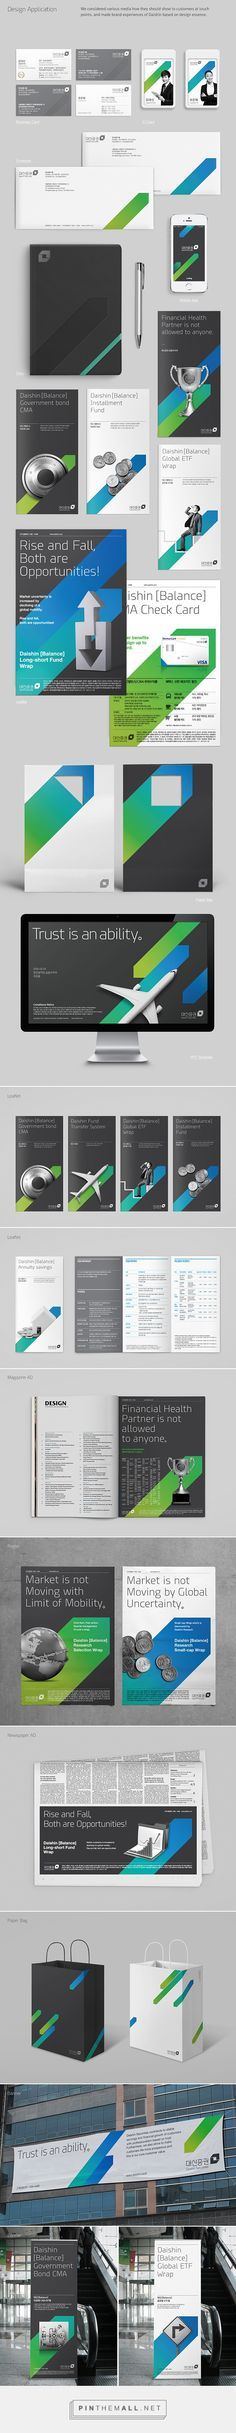 DAISHIN SECURITIES Brand eXperience Design Renewal on Behance - created via http://pinthemall.net